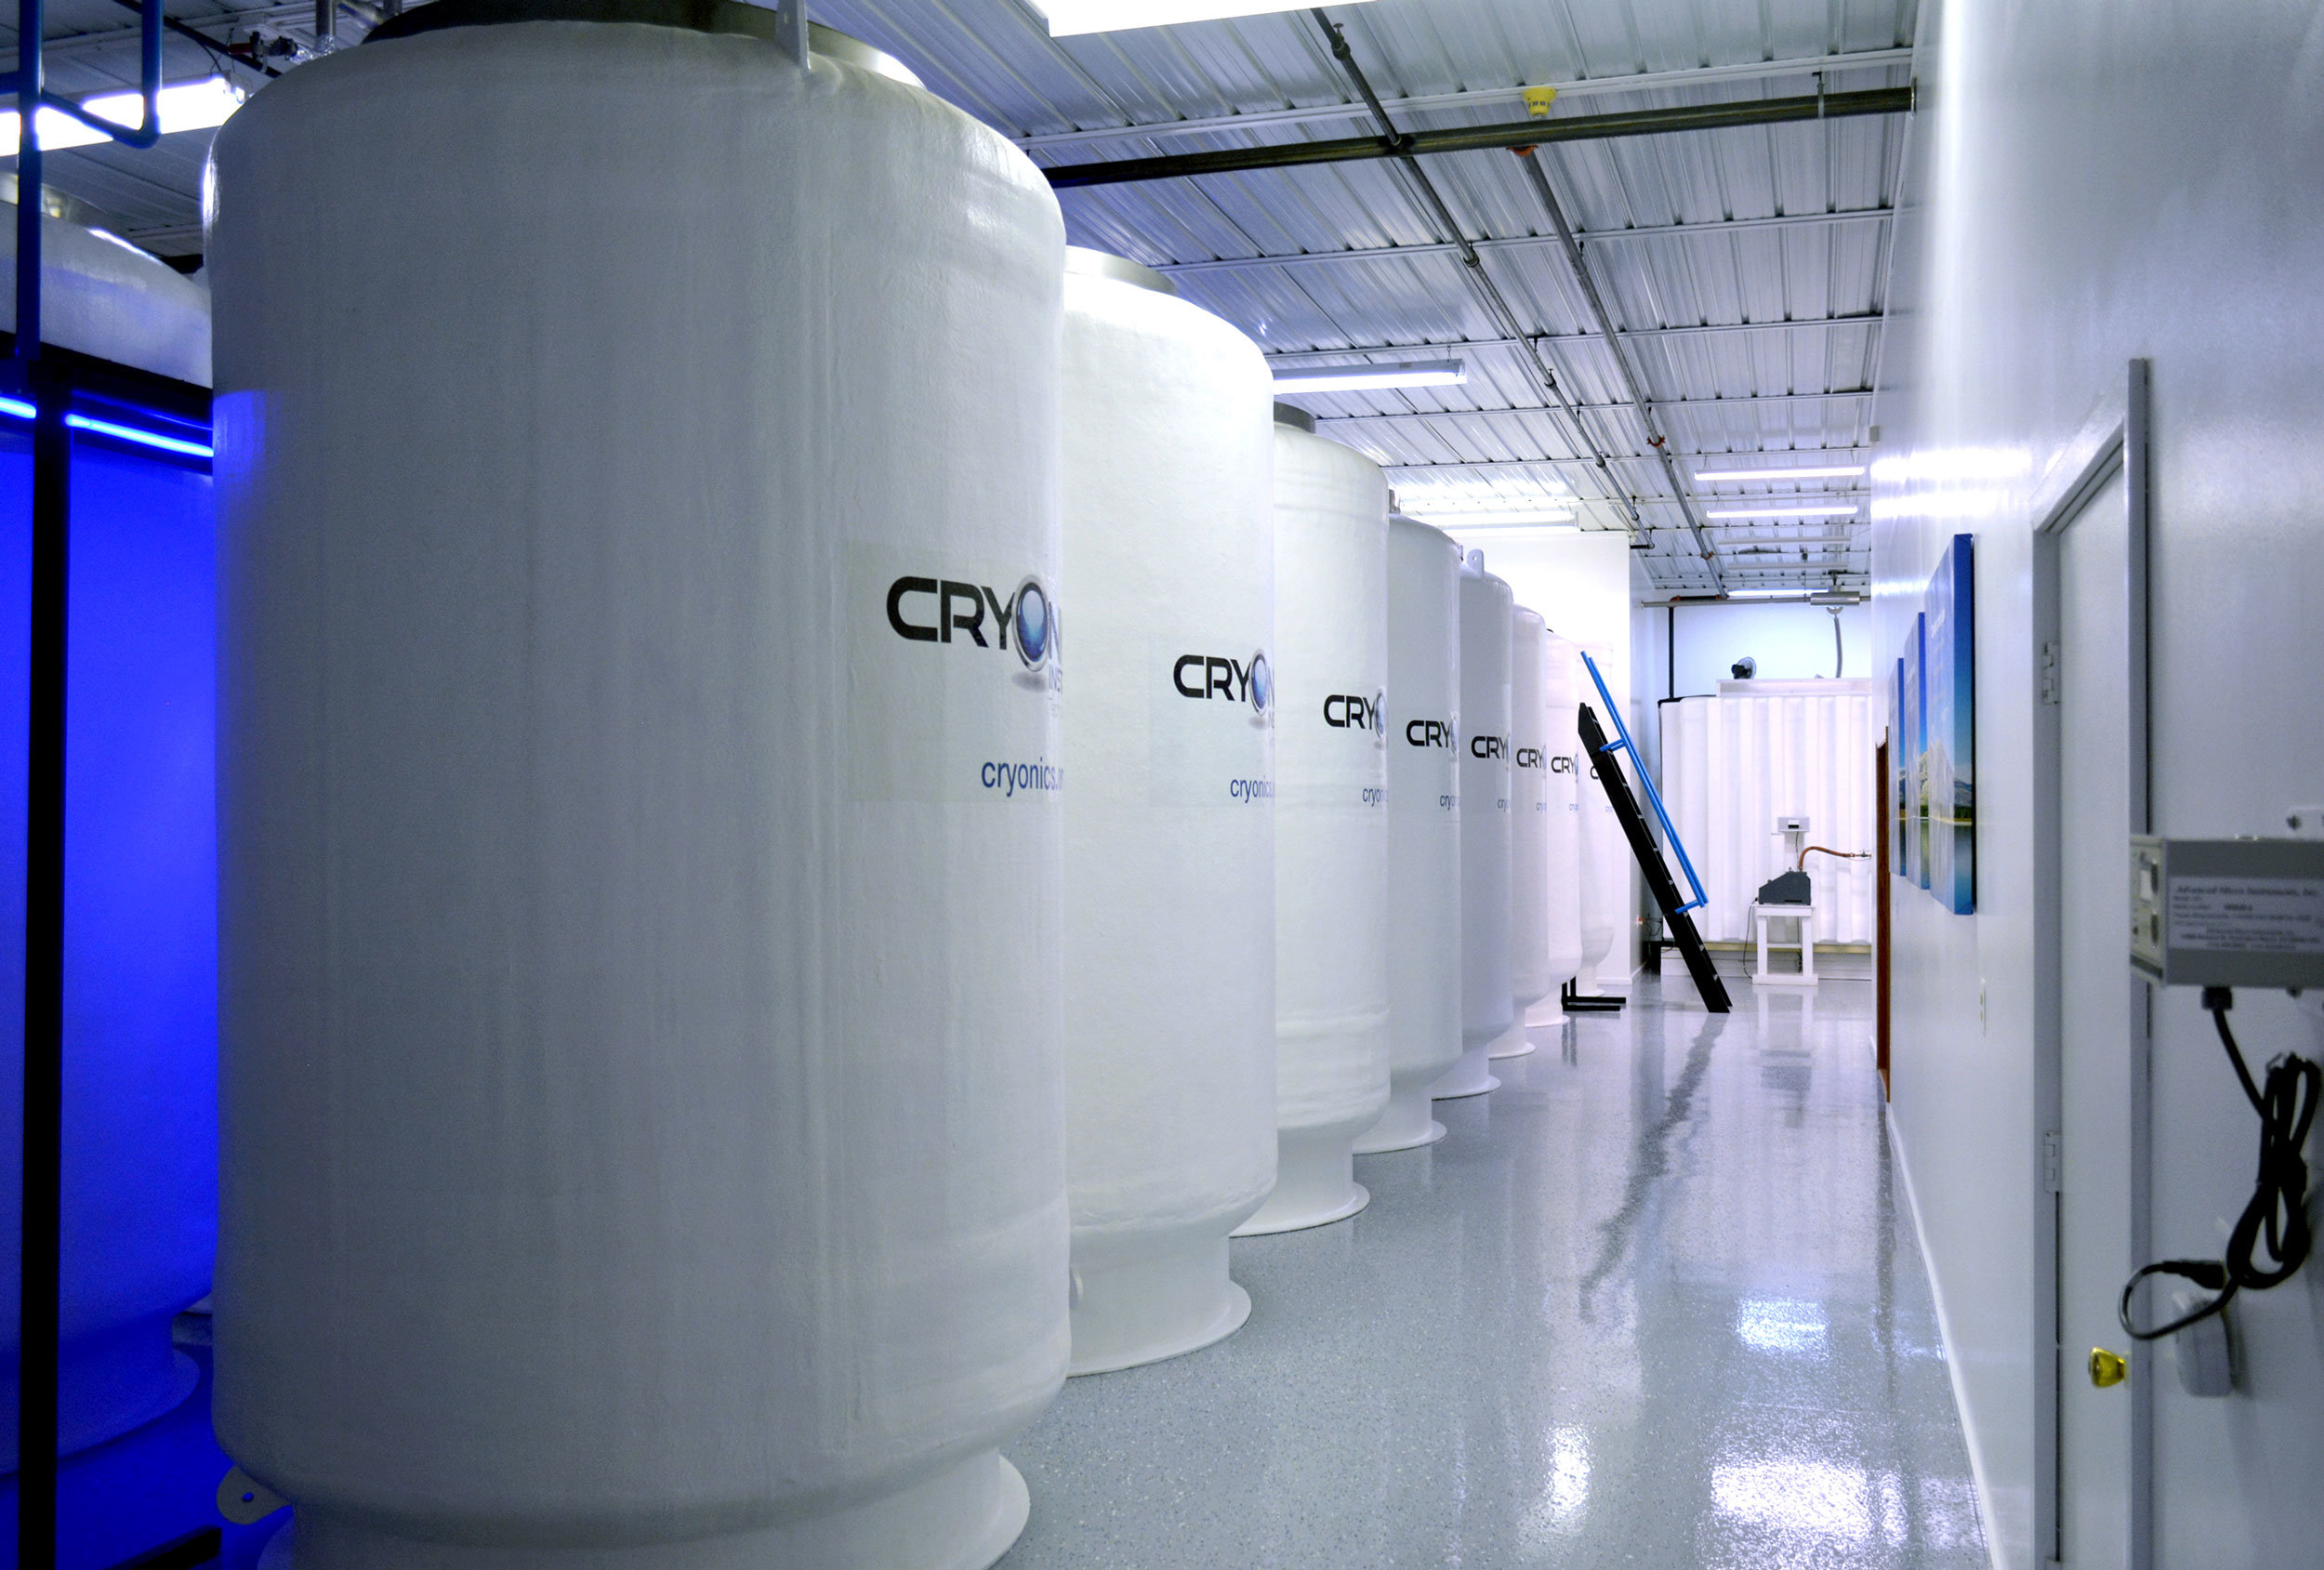 Cryonics Institute